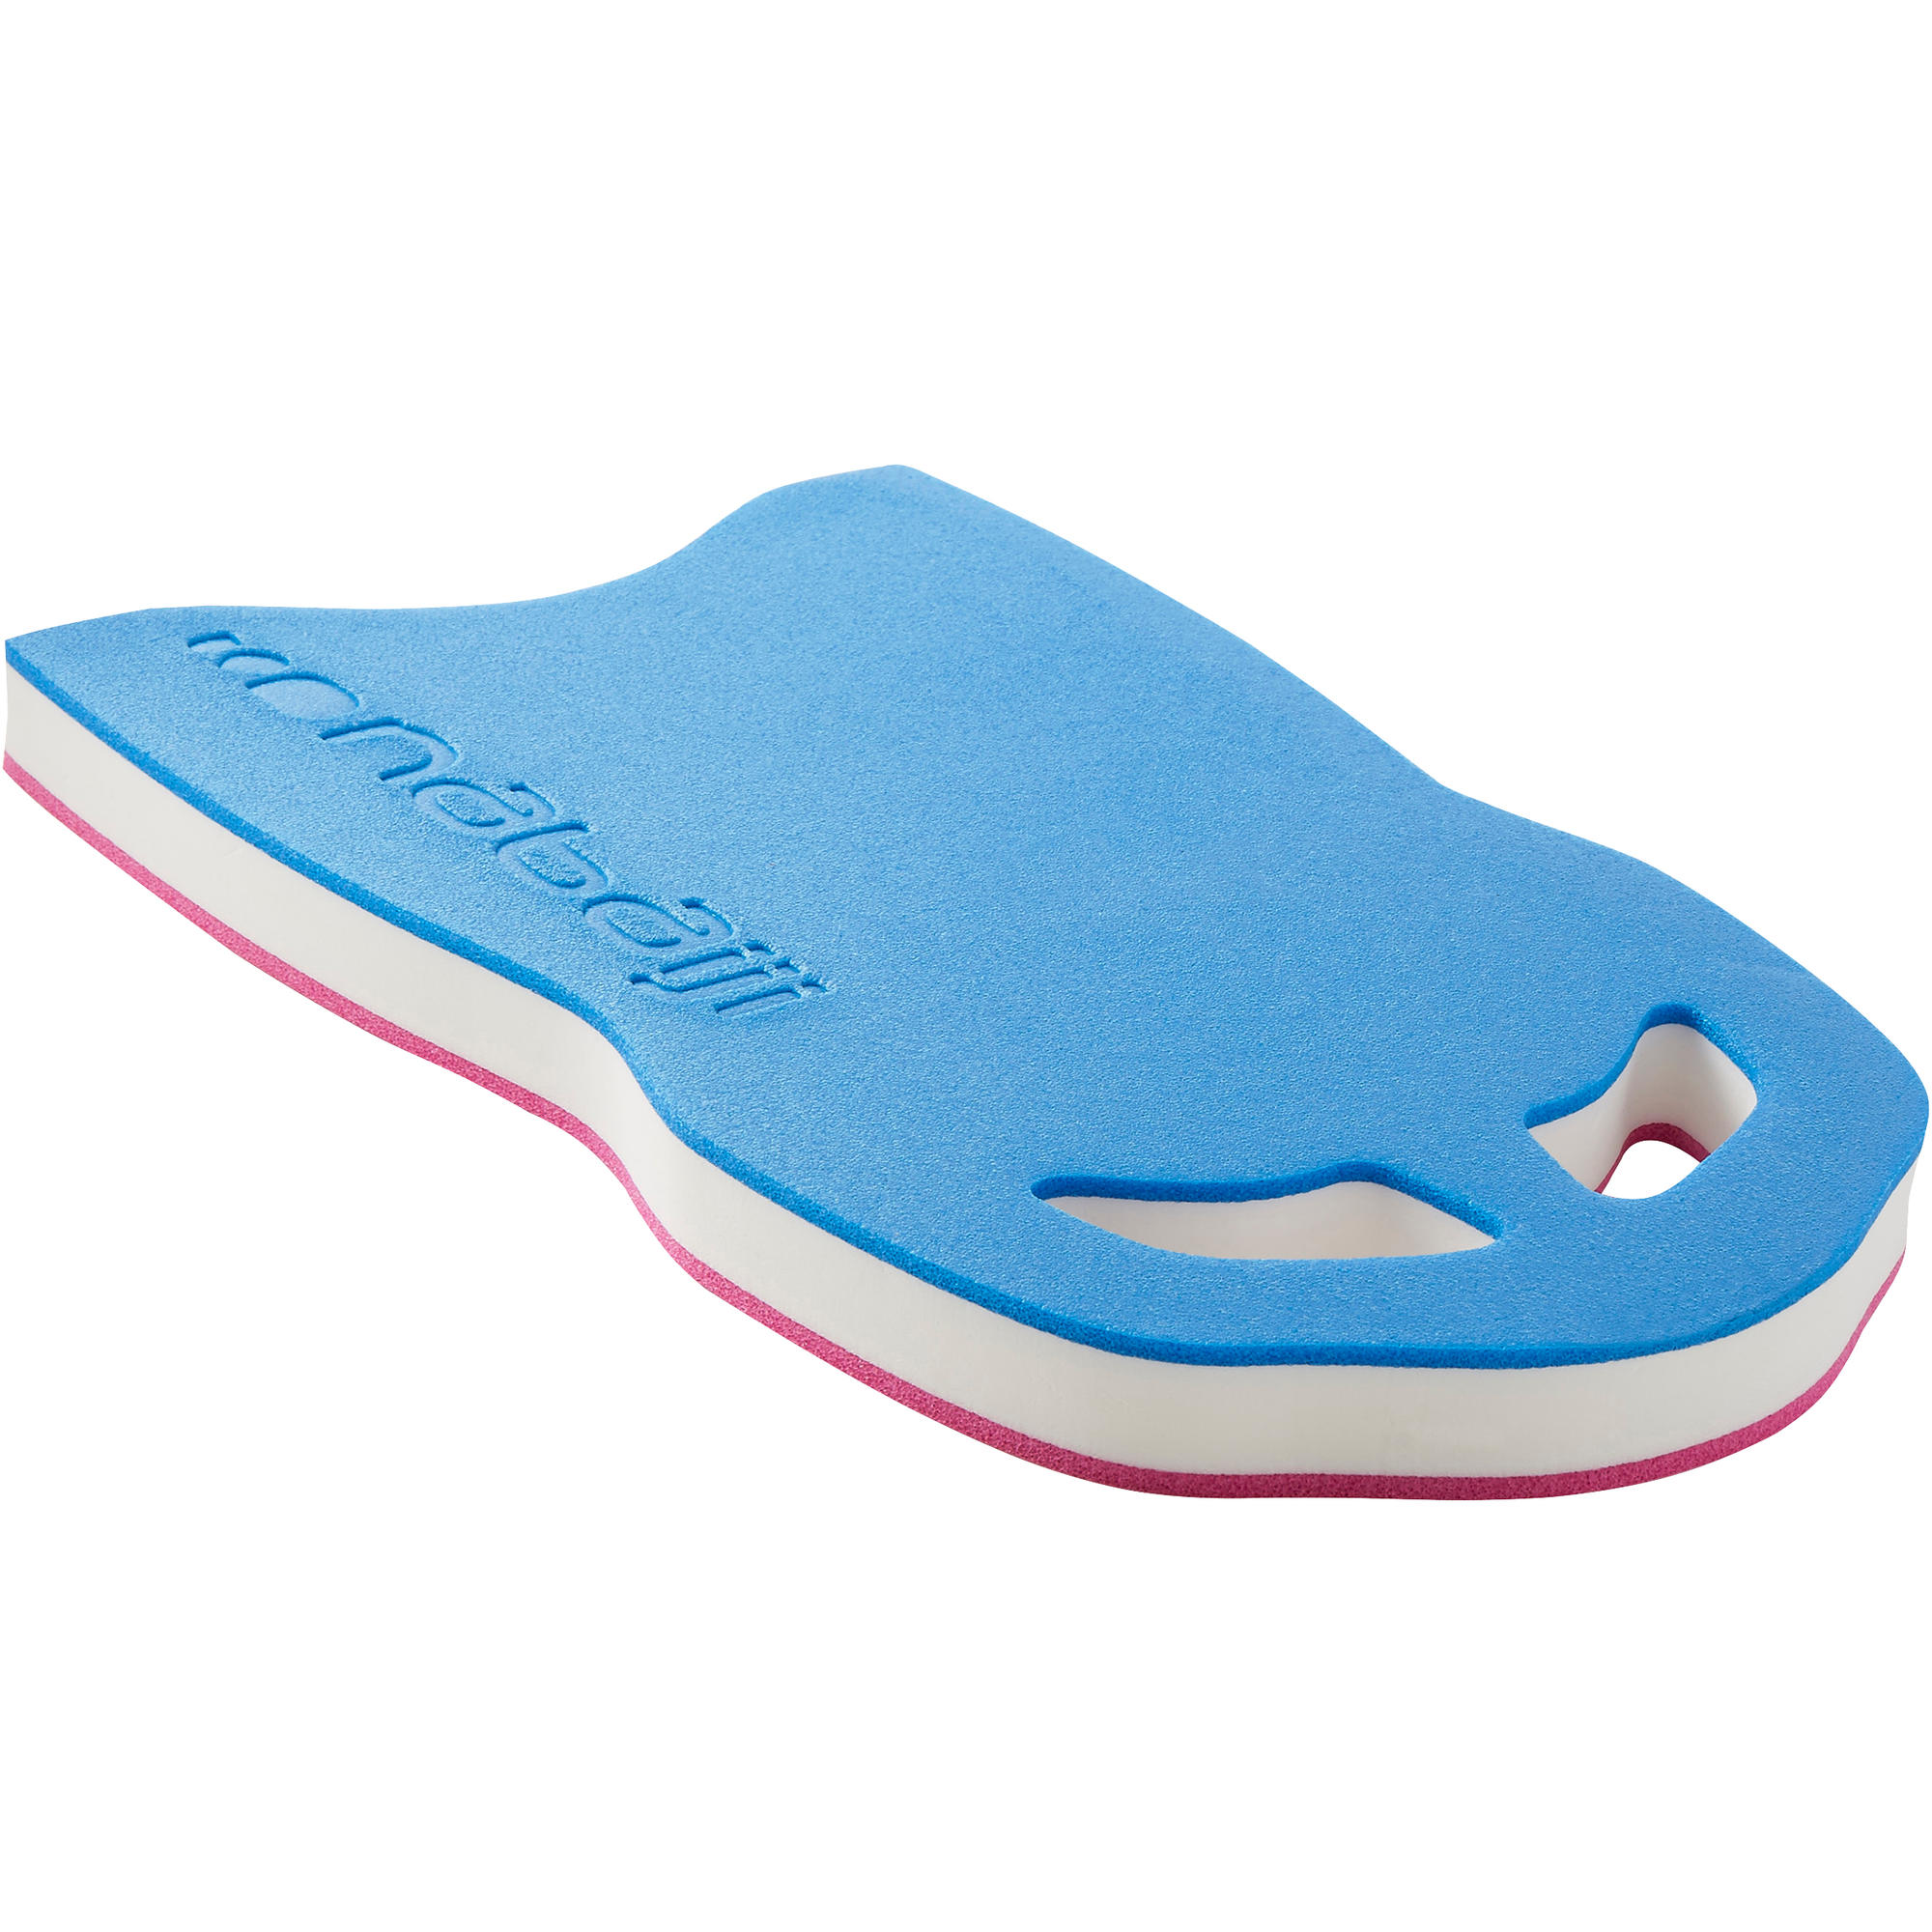 Planche natation kick 100 bleu rose nabaiji for Protege oreille piscine decathlon